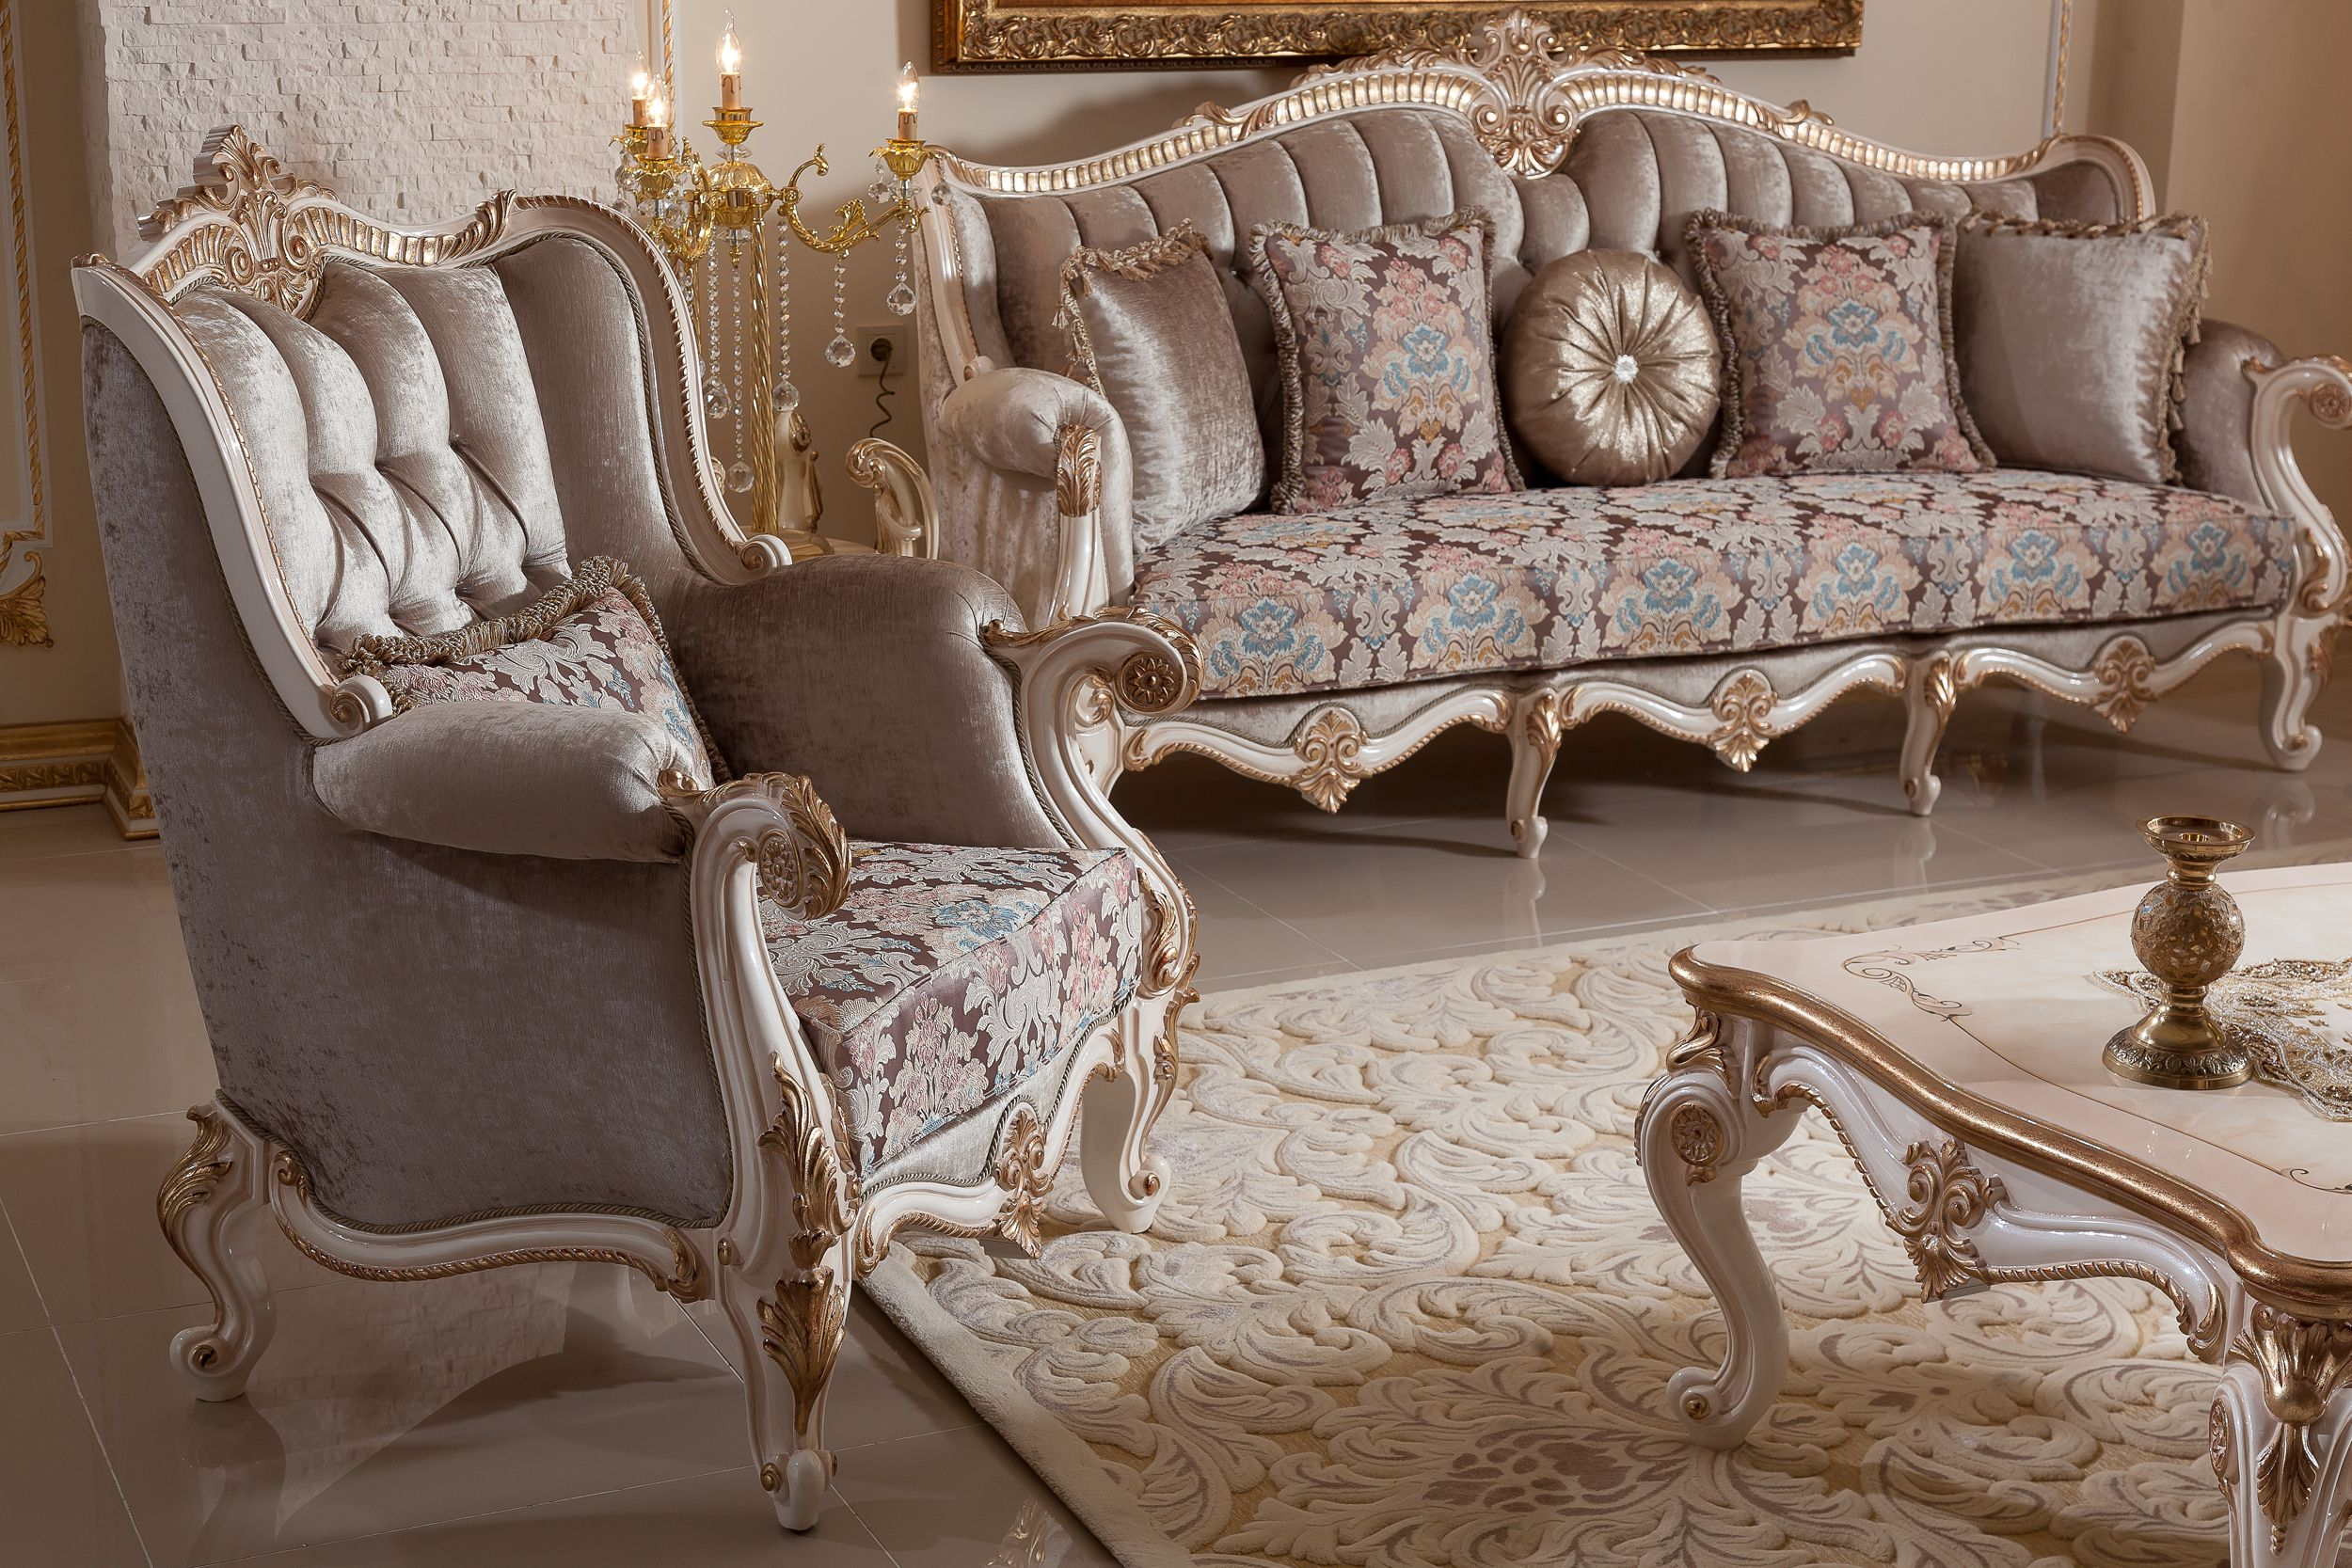 Inci Sofa Set Handmade Turkish Furniture You Can Give Order This